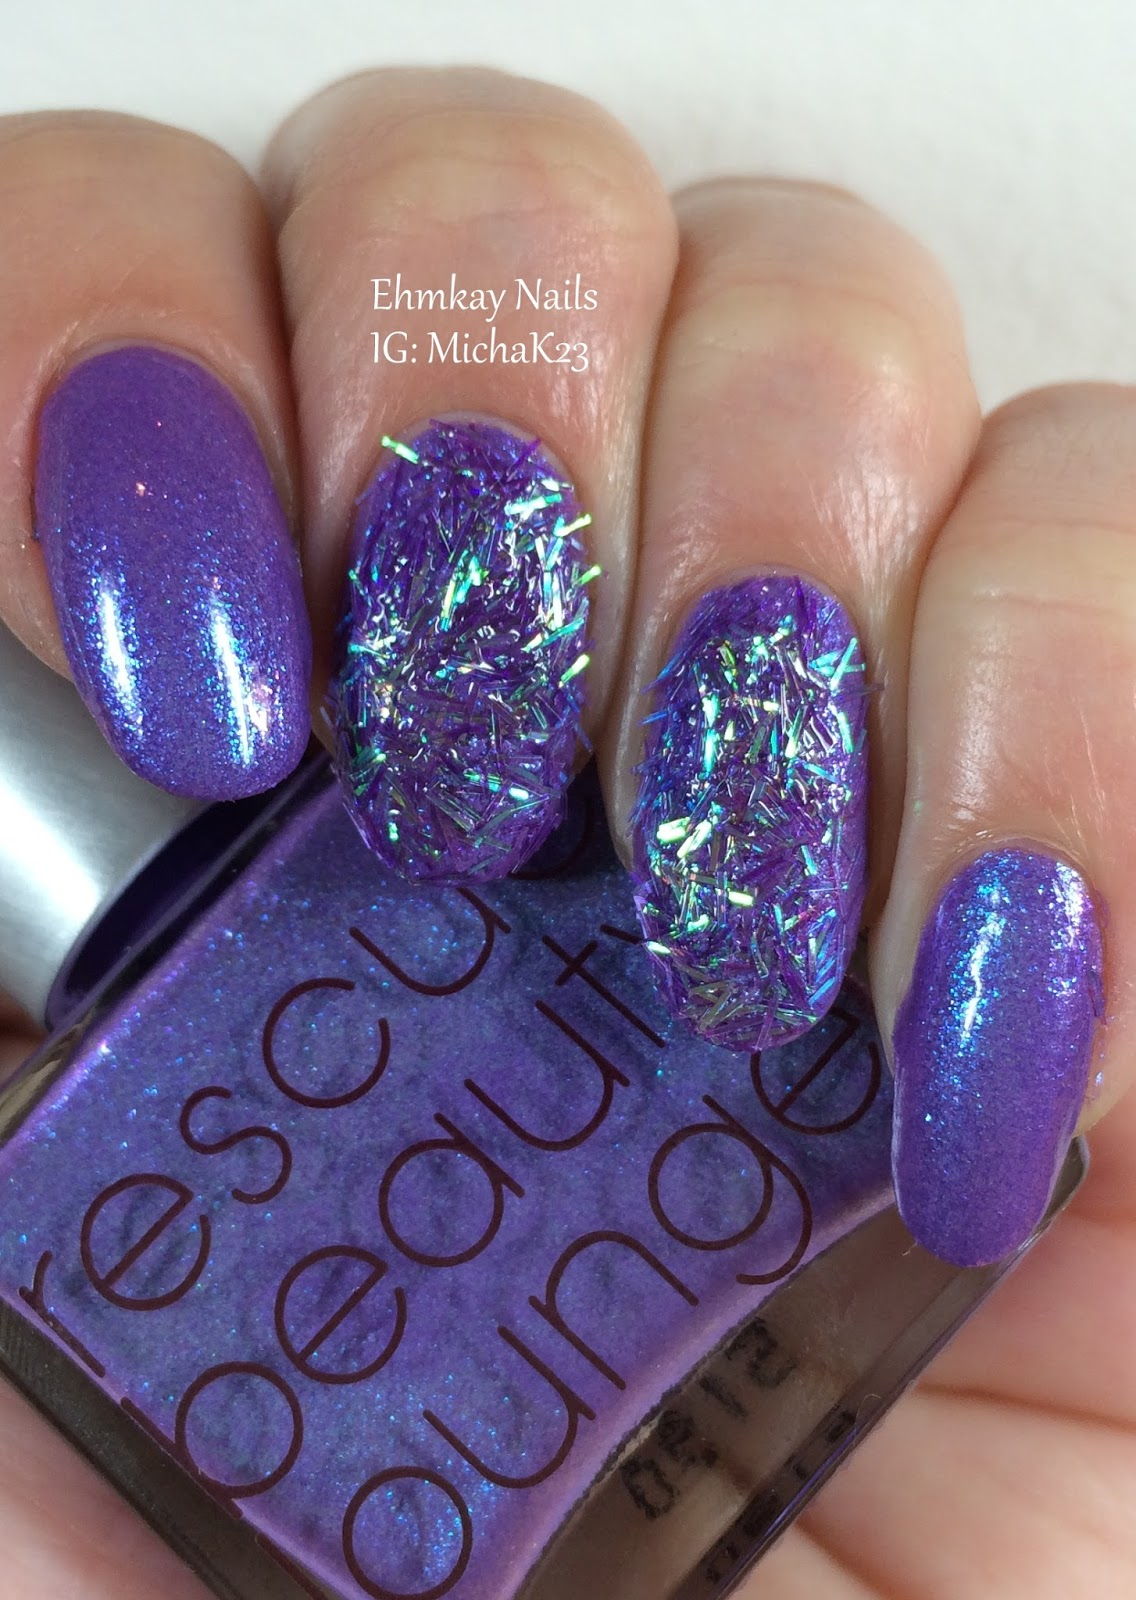 Ehmkay Nails Happy New Year S Eve Nail Art Stamping: Ehmkay Nails: Rescue Beauty Lounge Galaxsea With 3D Glitter